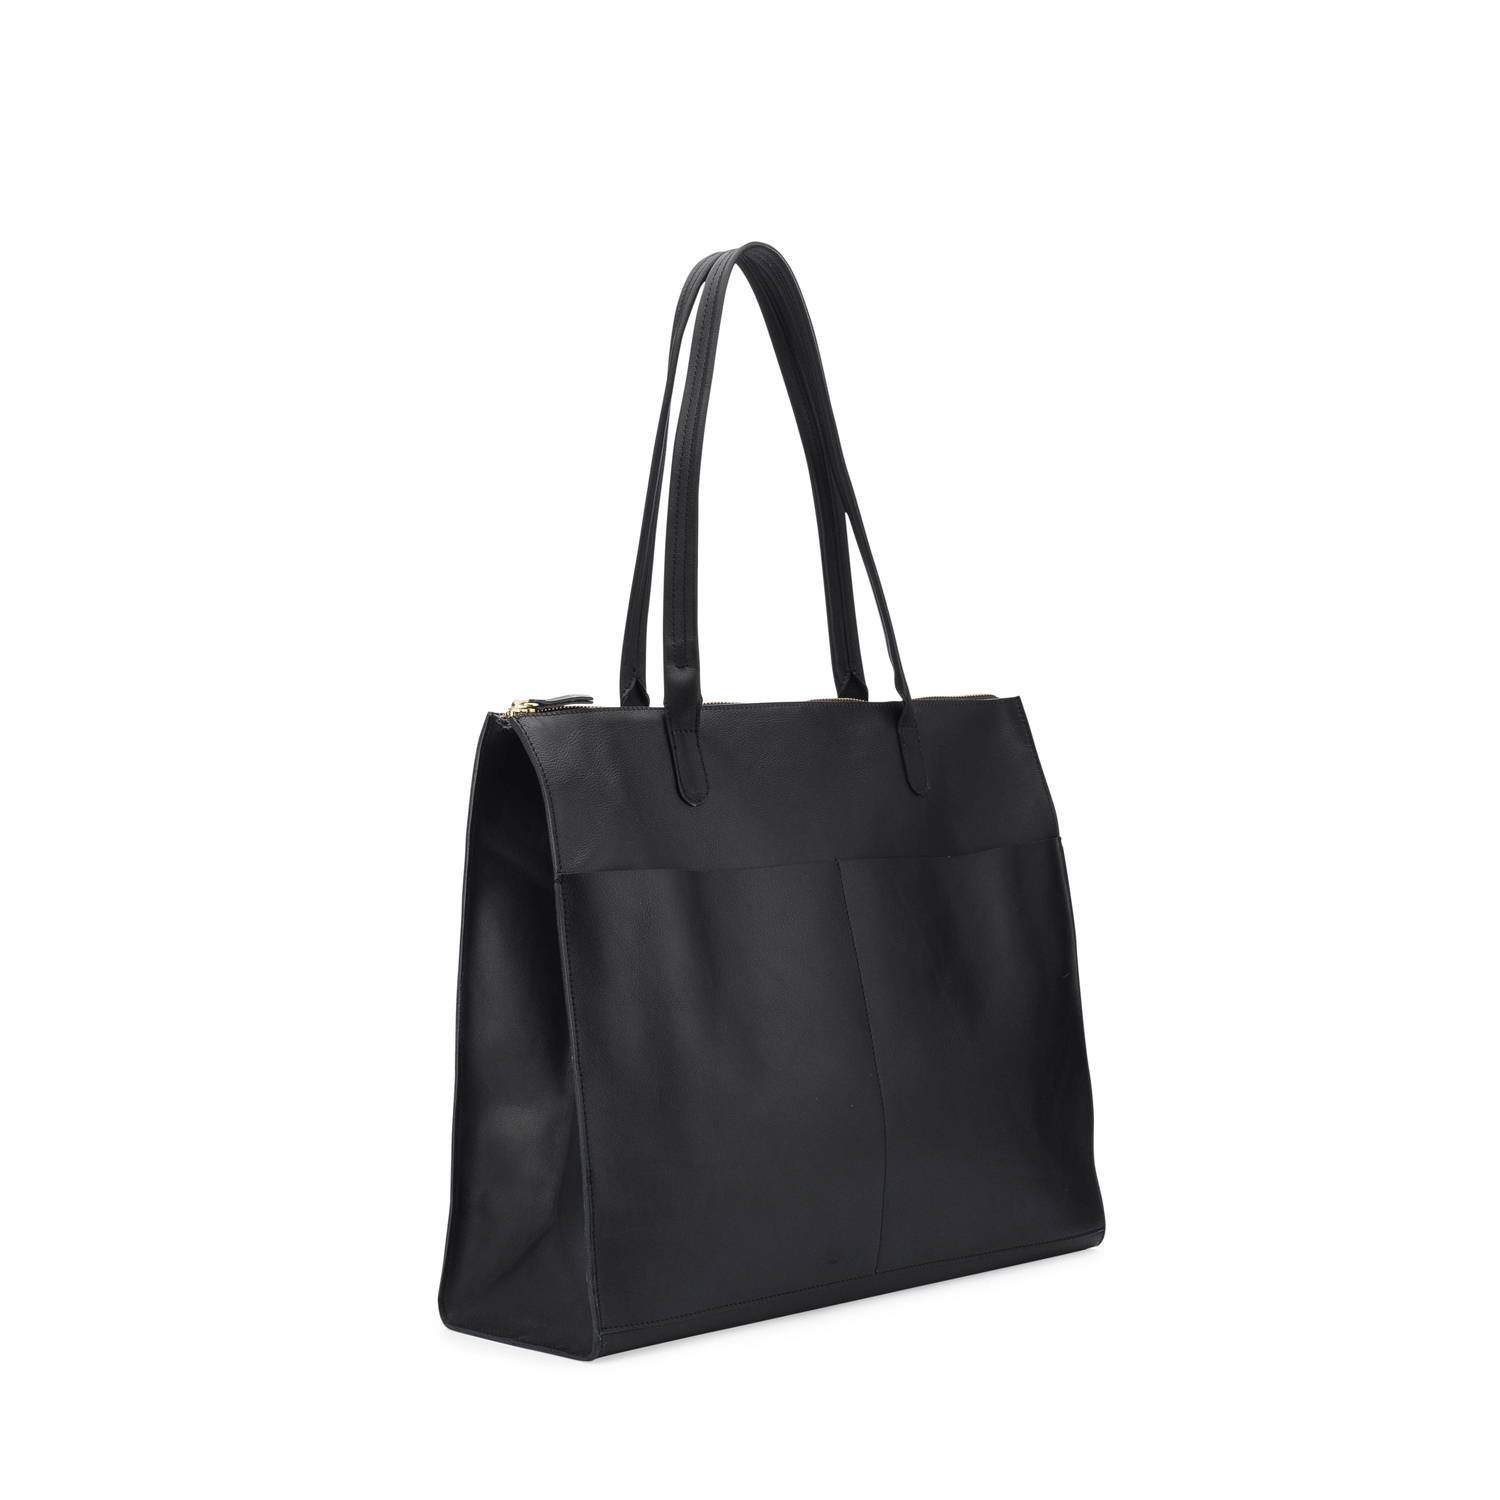 Everything zip top tote in black leather